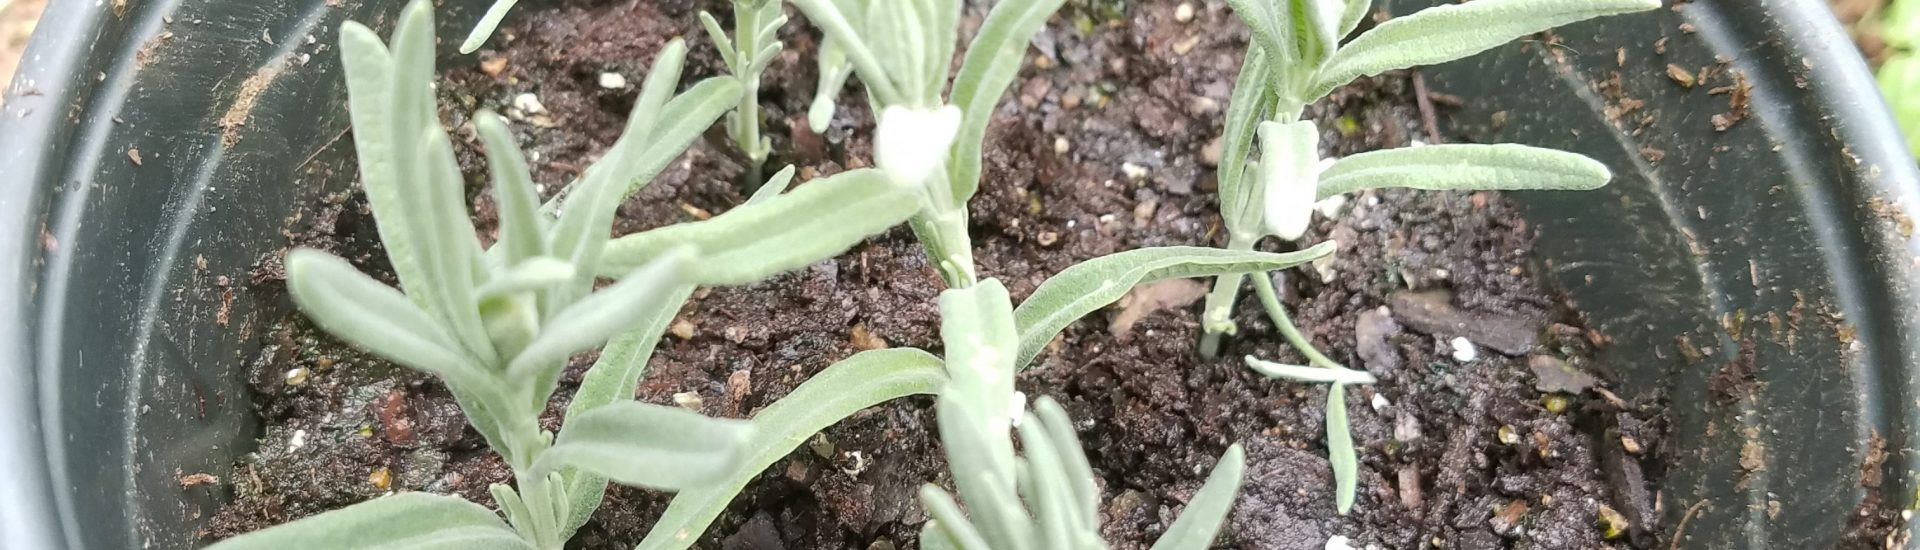 Propagating Lavender by Cuttings